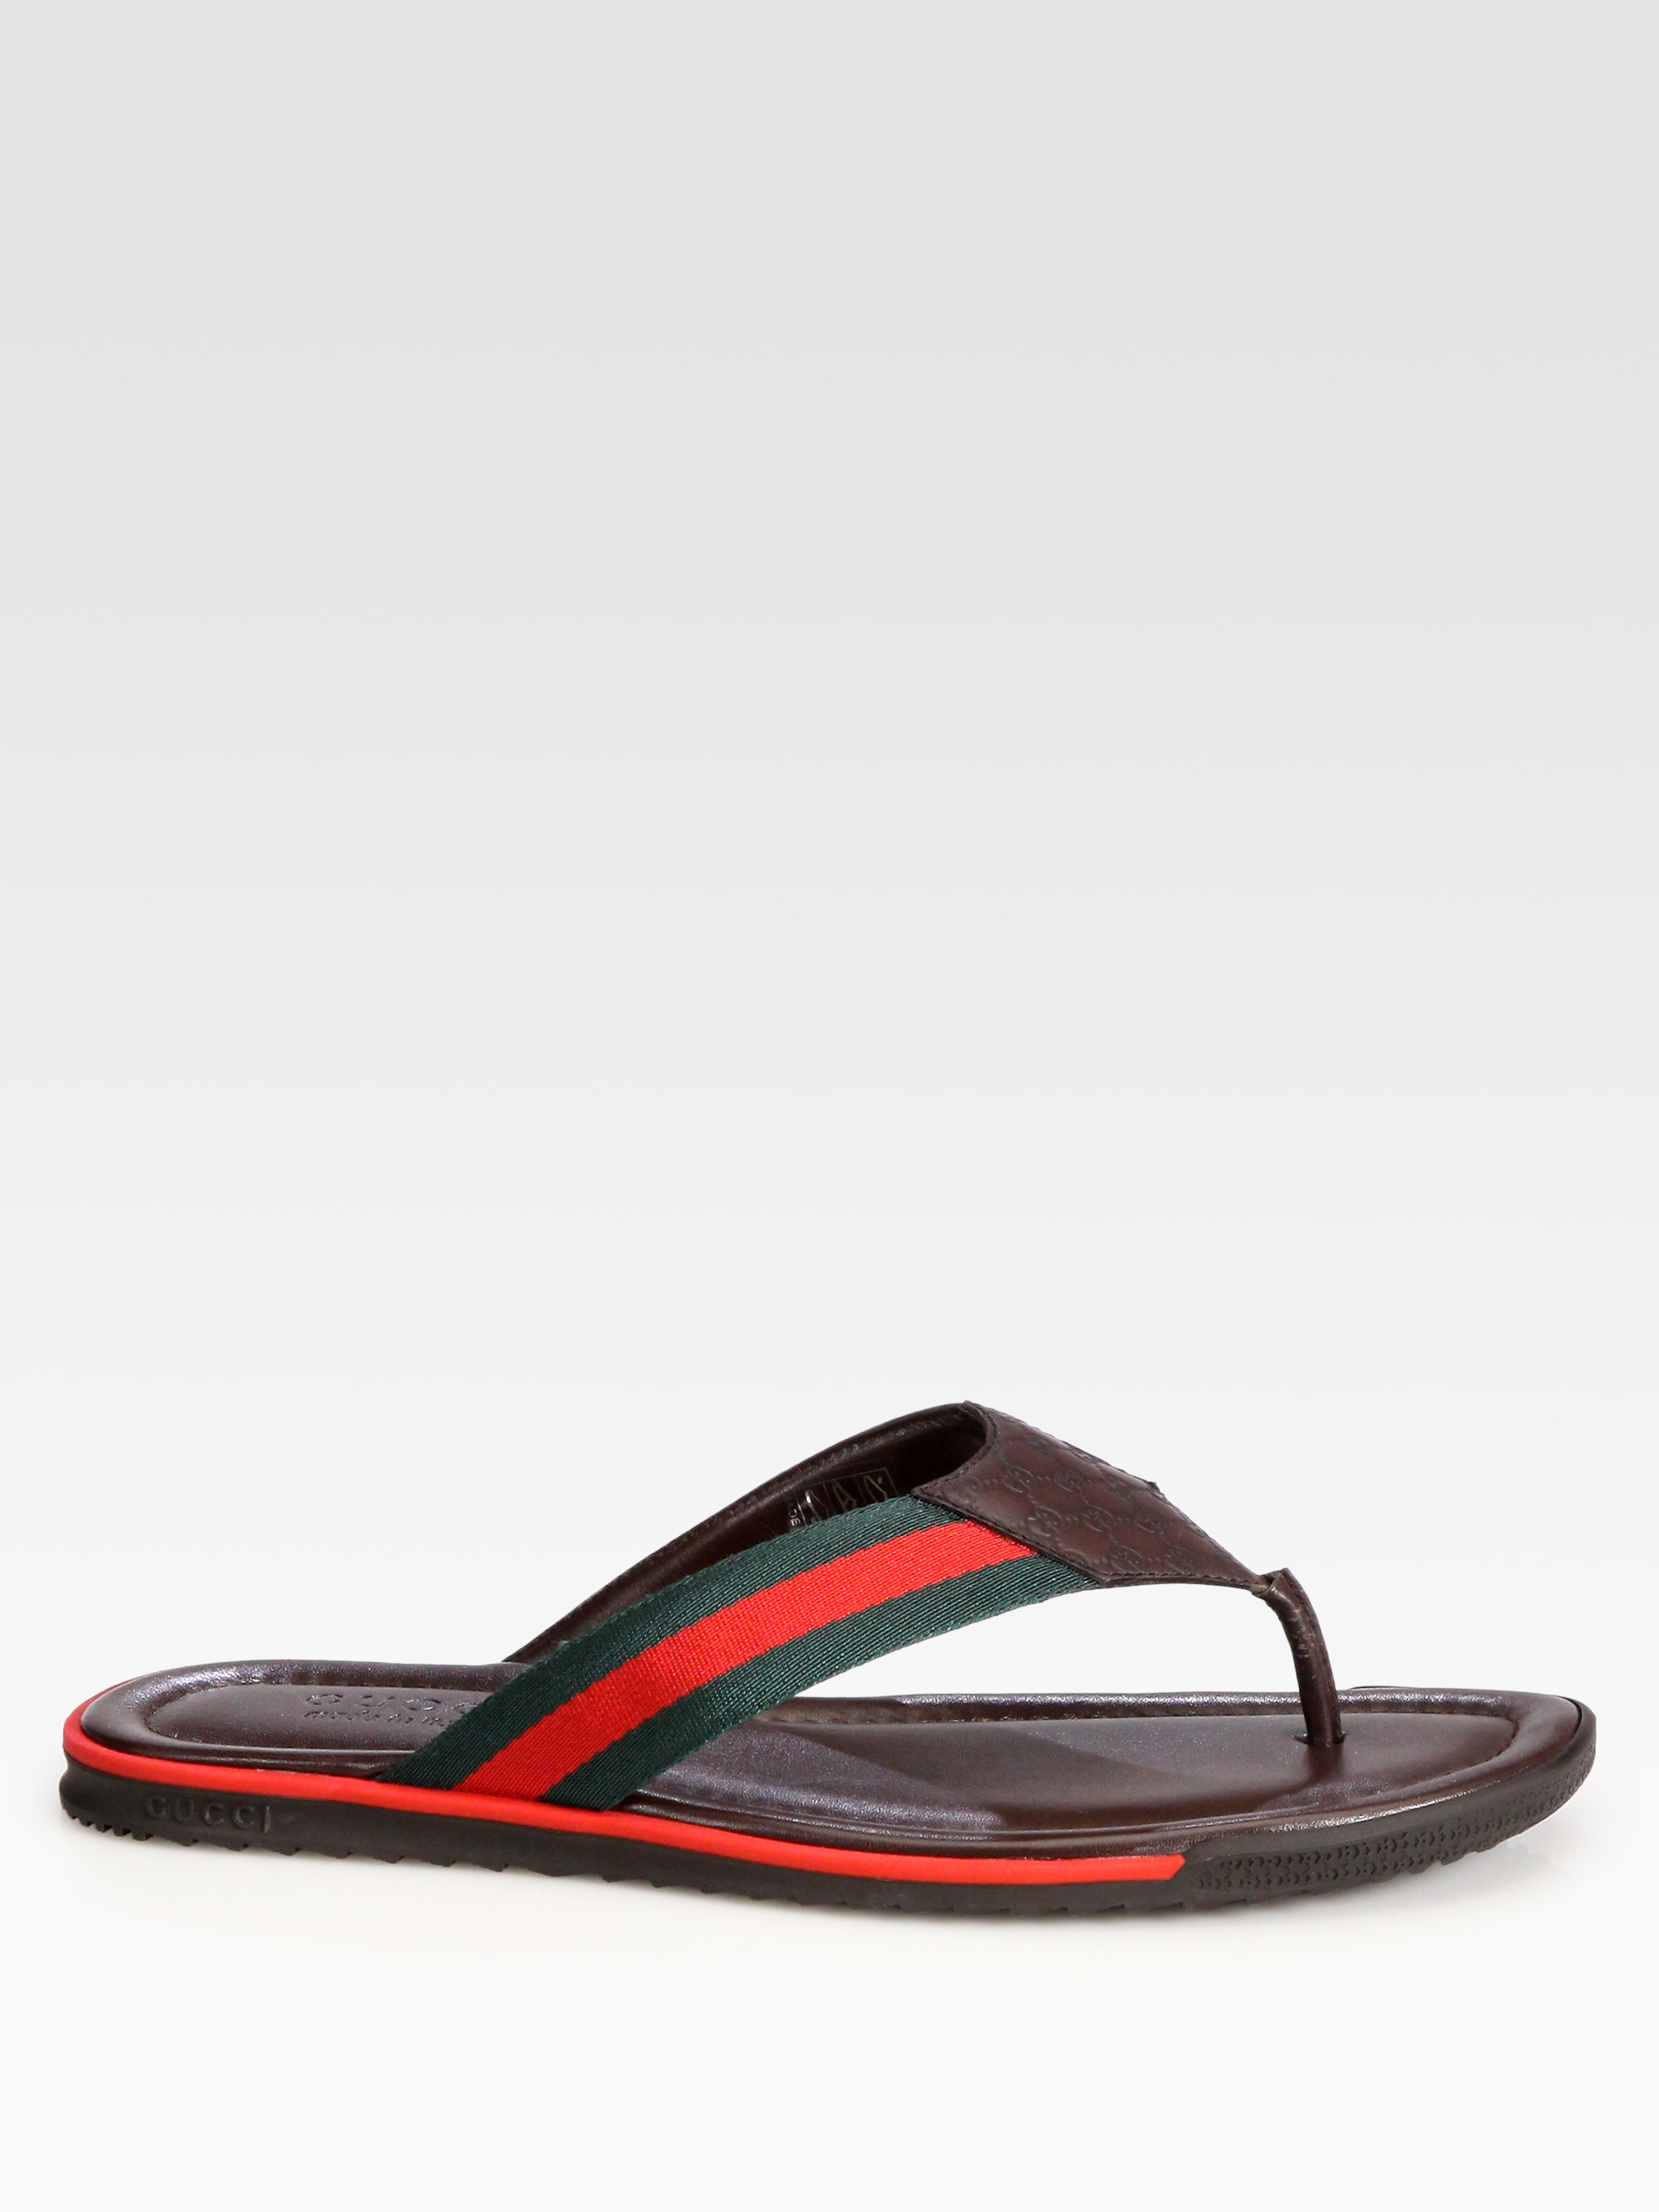 Lyst Gucci Thong Sandals In Brown For Men